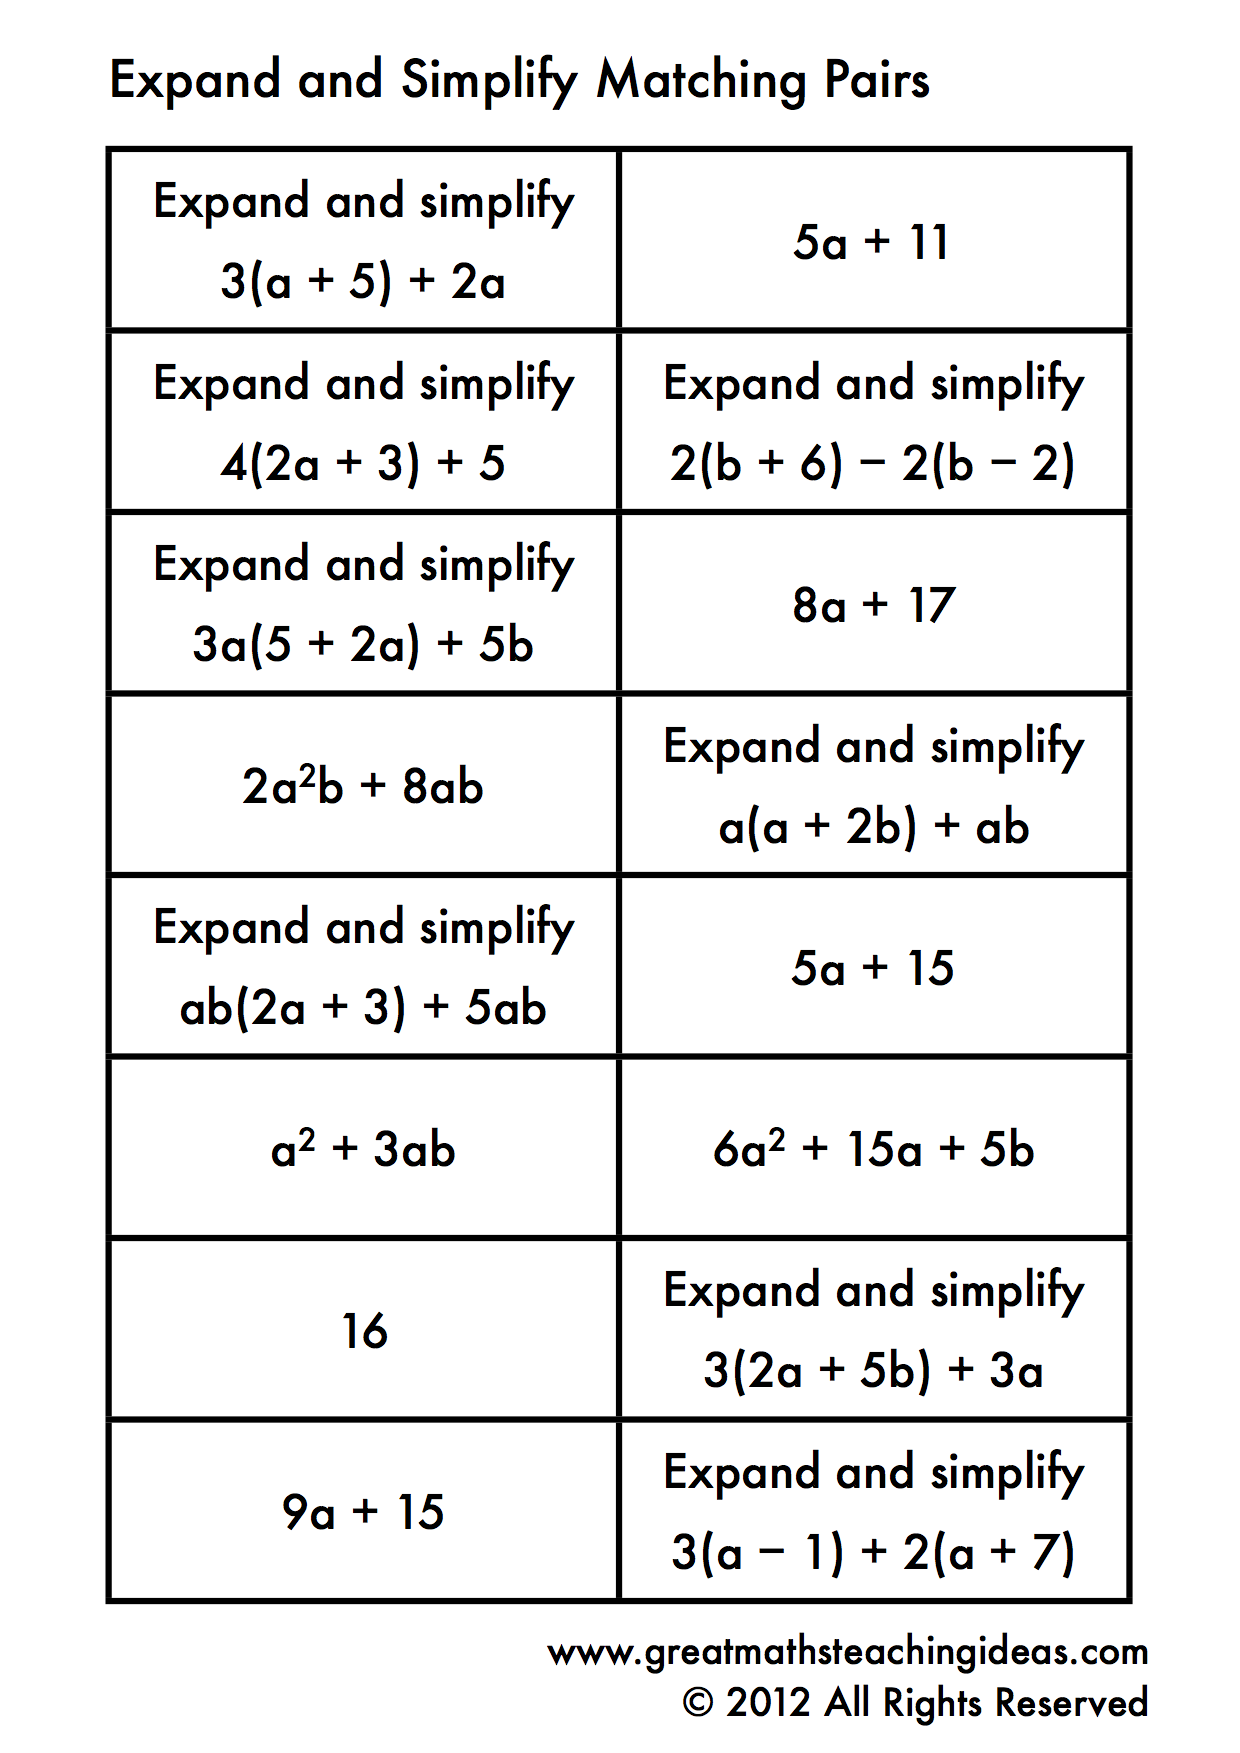 Expand And Simplify Single Brackets Matching Pairs With